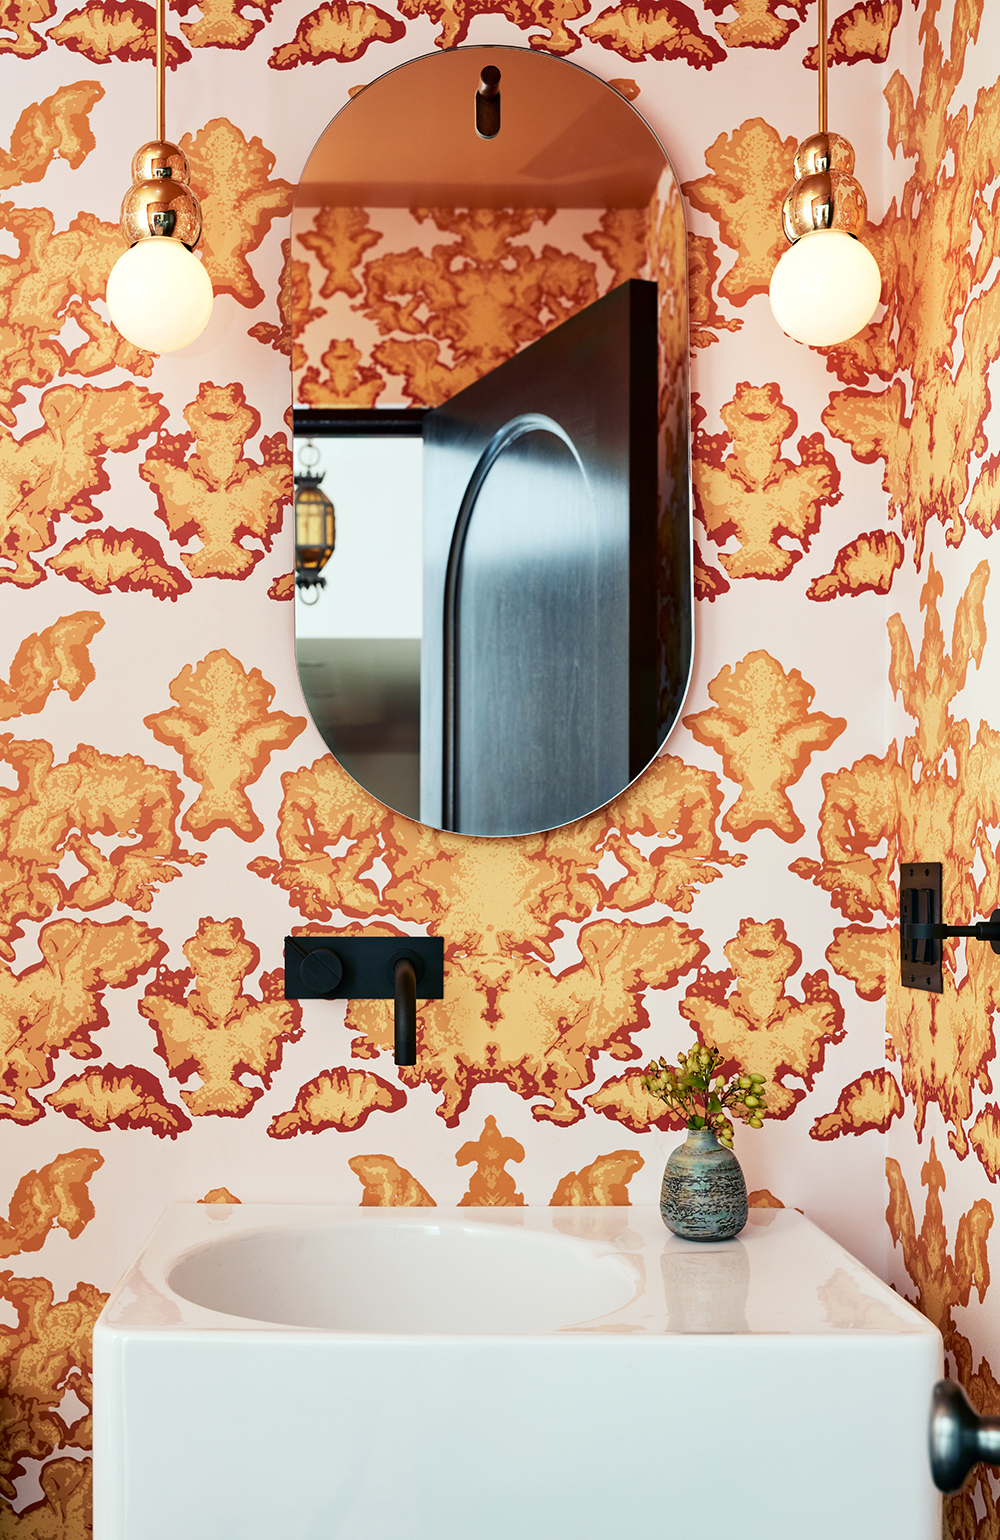 Located near the kitchen, the powder room features a hypnotic, hand-printed wallpaper by Timorous Beasties that's playful and electric. Ball light pendants by Michael Anastassiades enhance the Mod ambience.  The curve of the mirror mimics the arch shape throughout the house. In many rooms of the house, the design team used Invisible Lightswitches from Forbes & Lomax so as not to interrupt the flow of the wallpaper or paint.